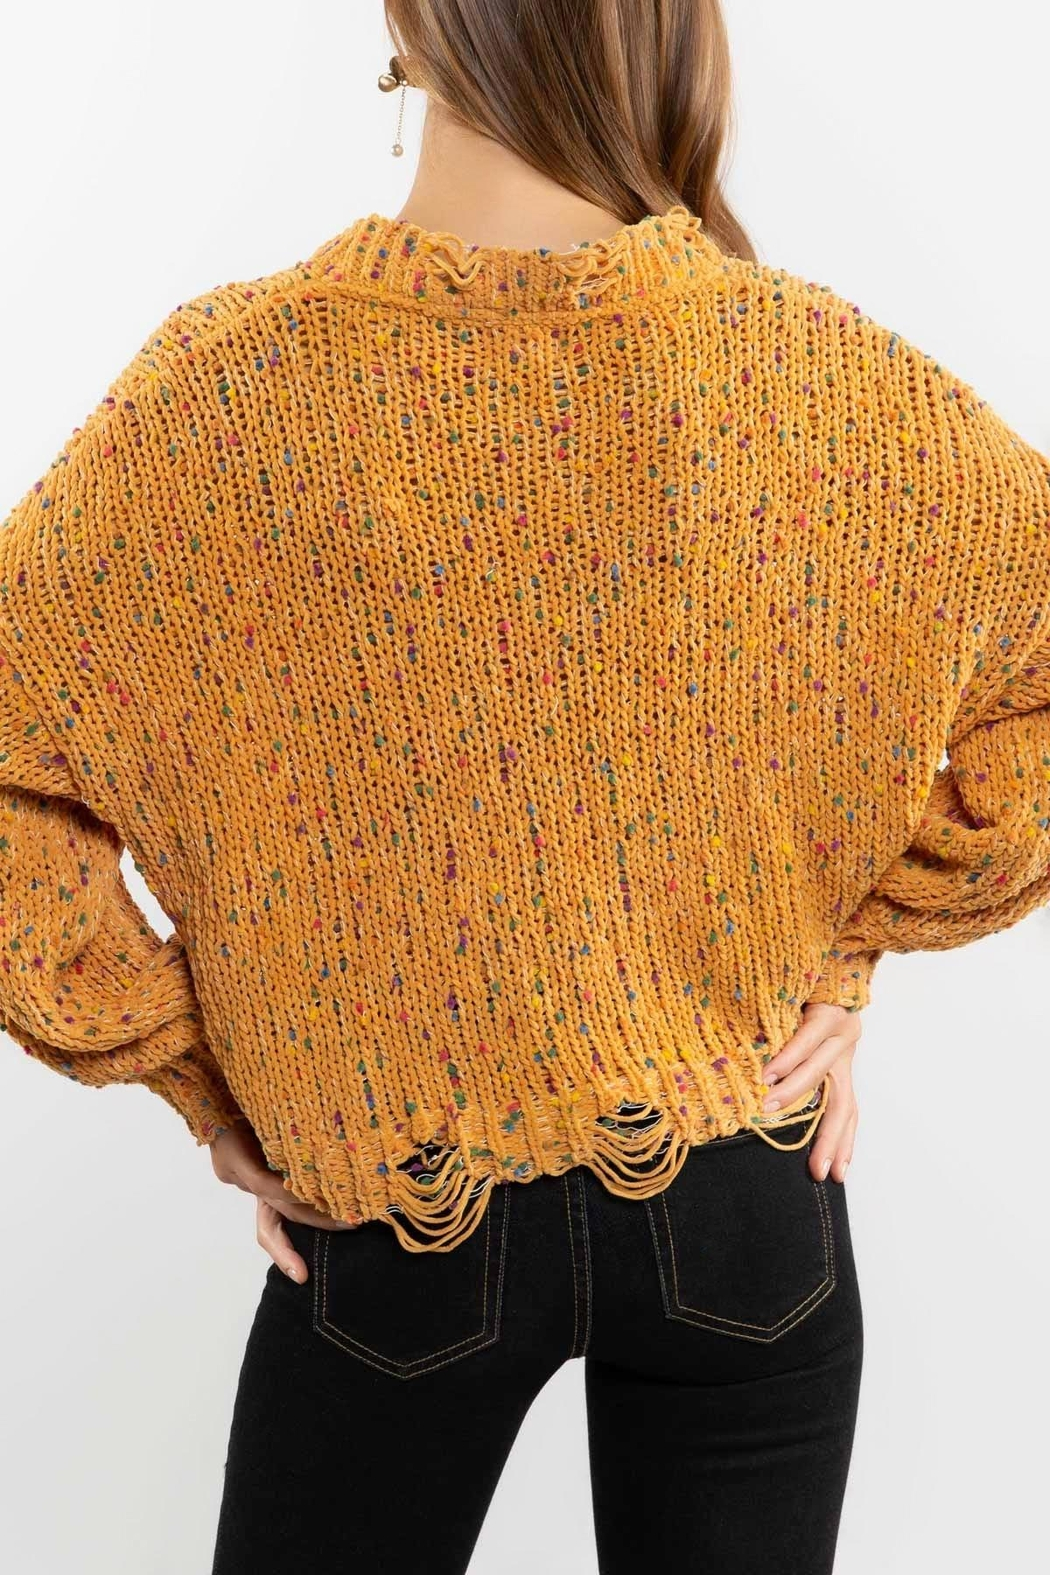 POL Mustard Crewneck Sweater Top - Side Cropped Image